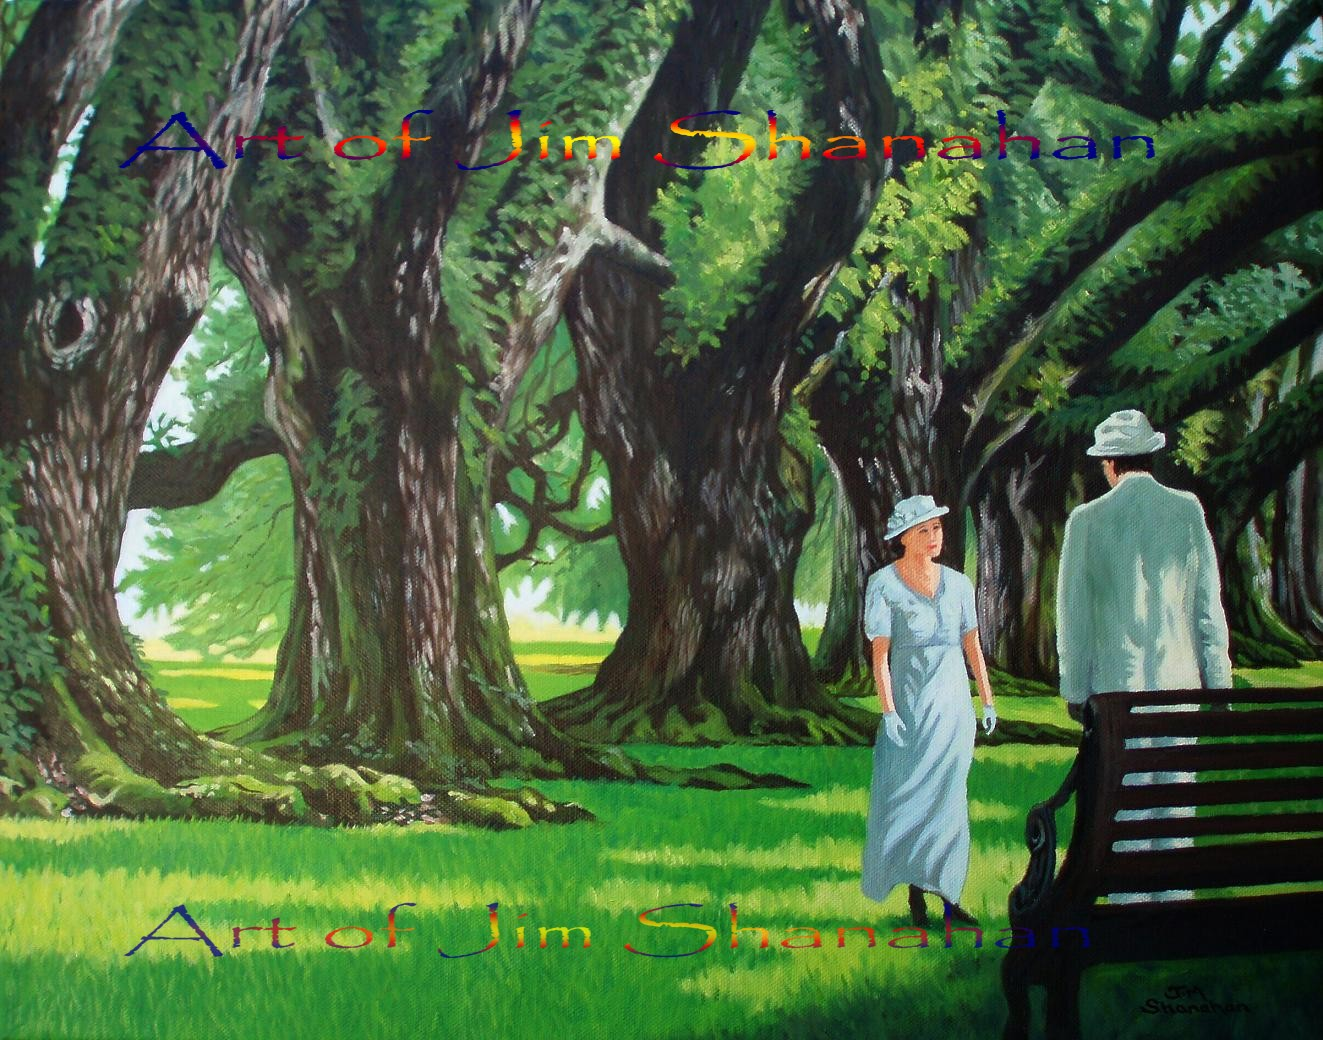 Under the Oaks -- For Sale Framed Euro 500